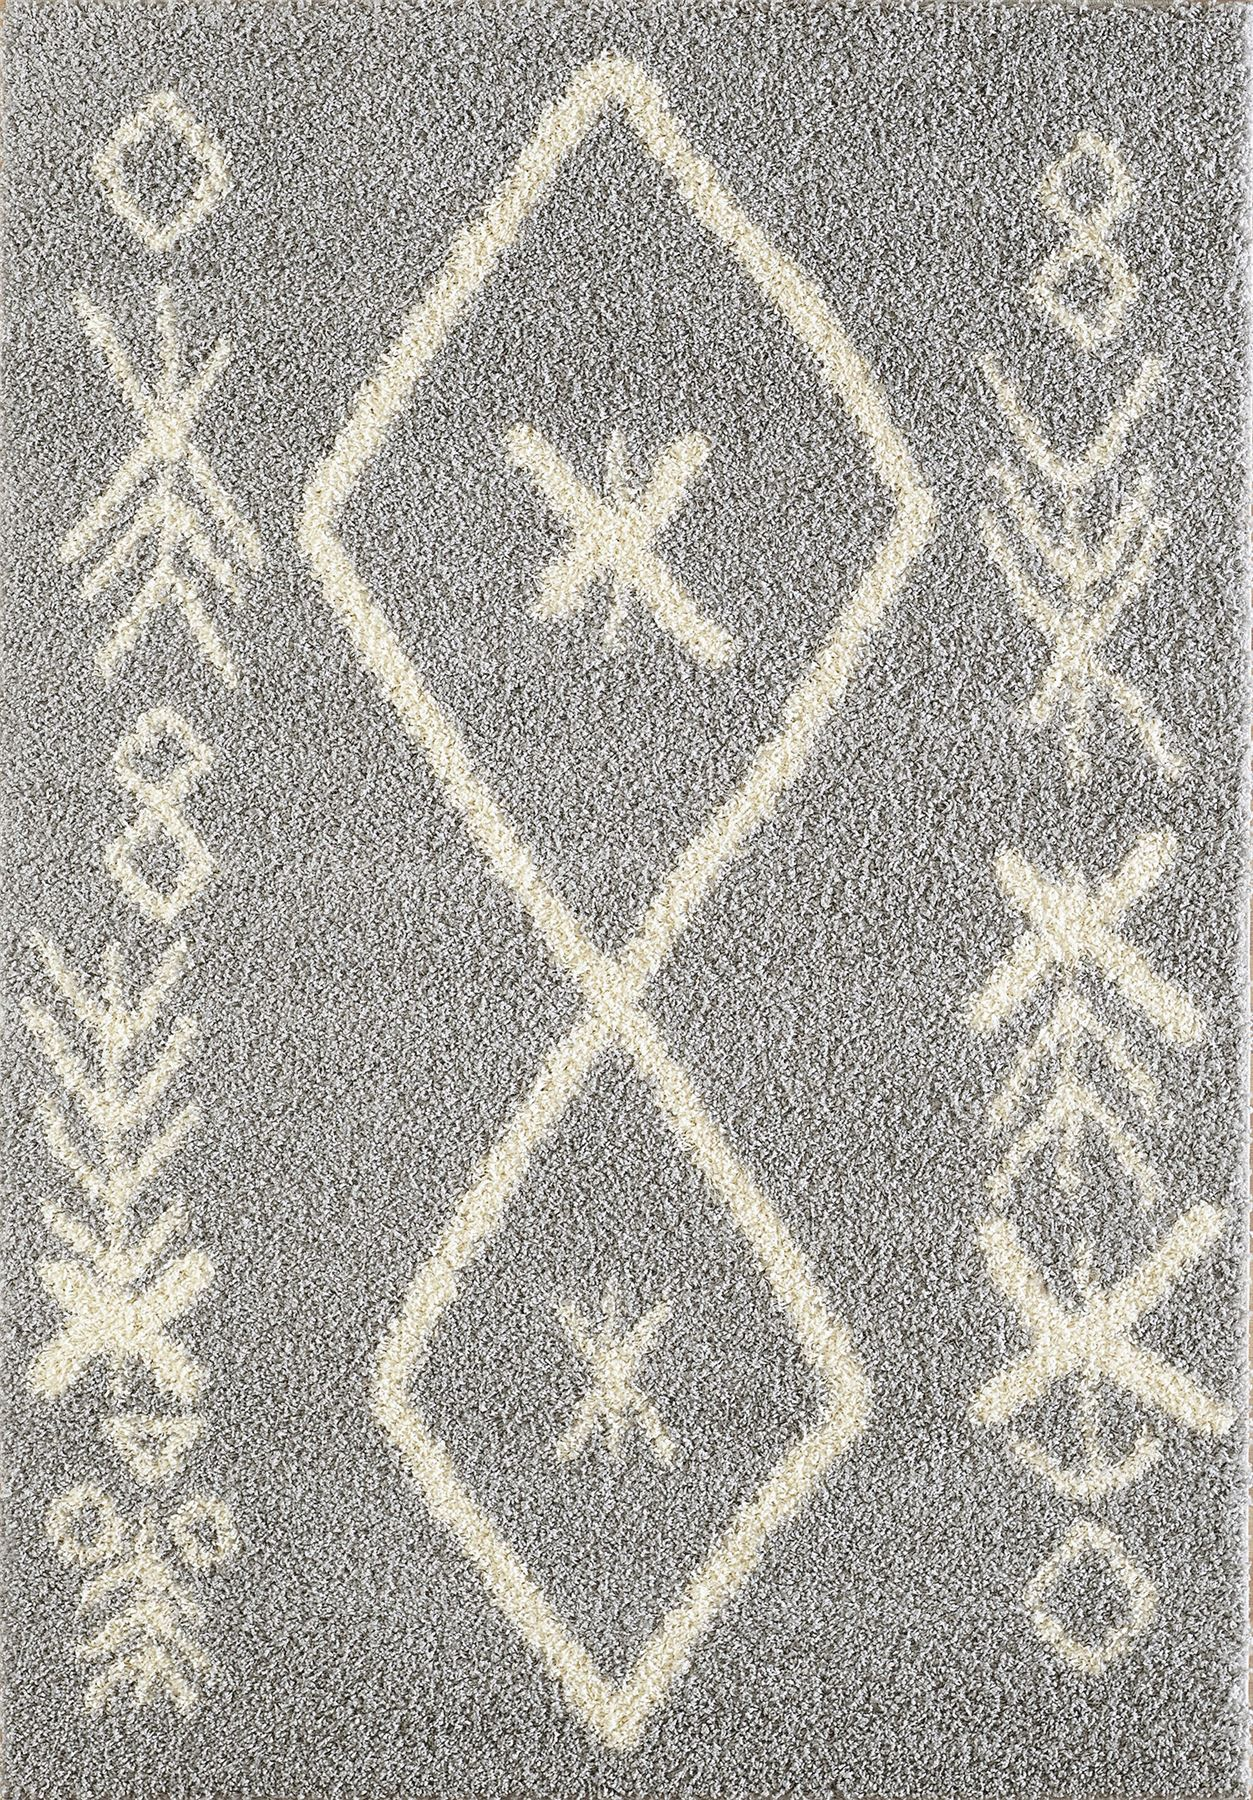 A2Z Rug Large Black White Cream Grey Shaggy Traditional Moroccan Tribal 3cm Pile